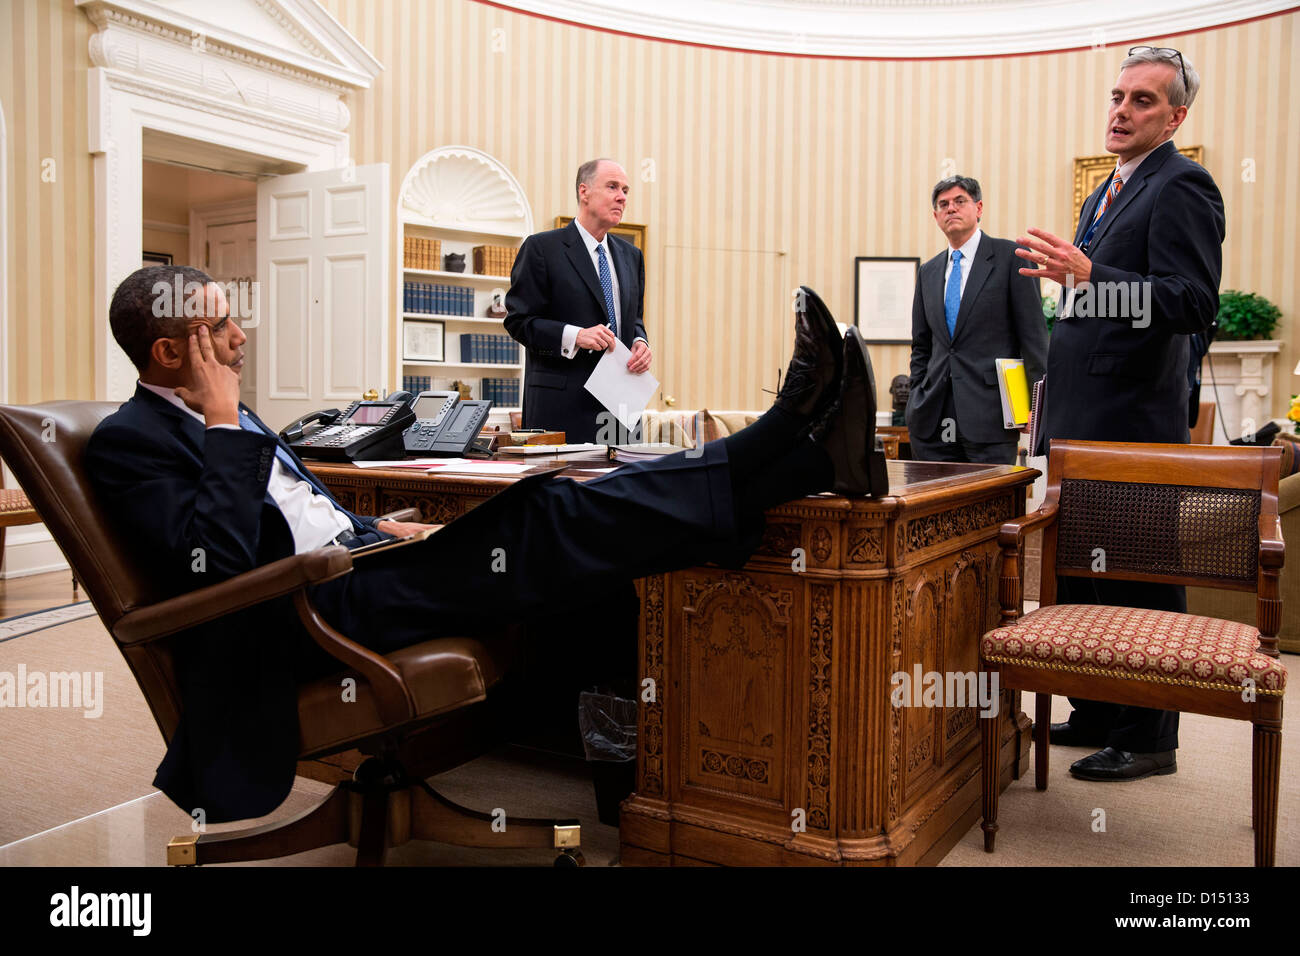 President Barack Obama meets with National Security Advisor Tom Donilon, Chief of Staff Jack Lew, and Deputy National - Stock Image